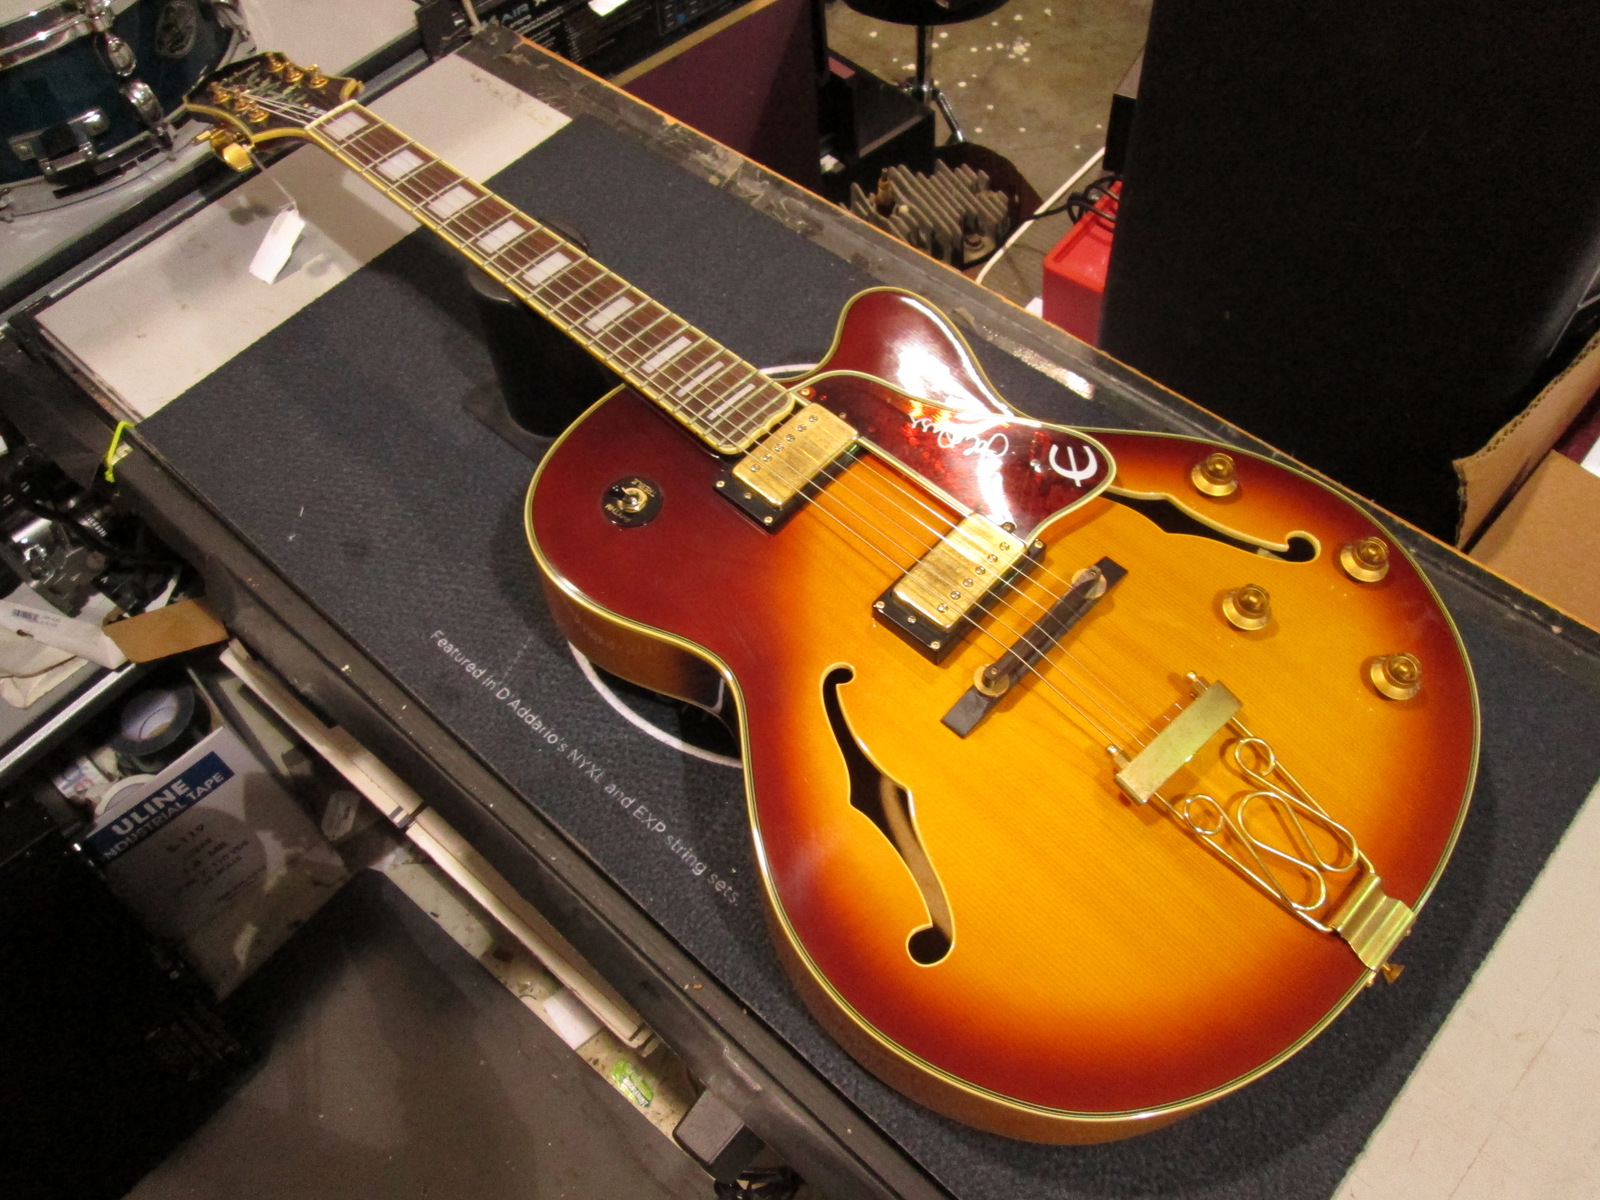 EPIPHONE JOE PASS EMPEROR II HOLLOWBODY GUITAR